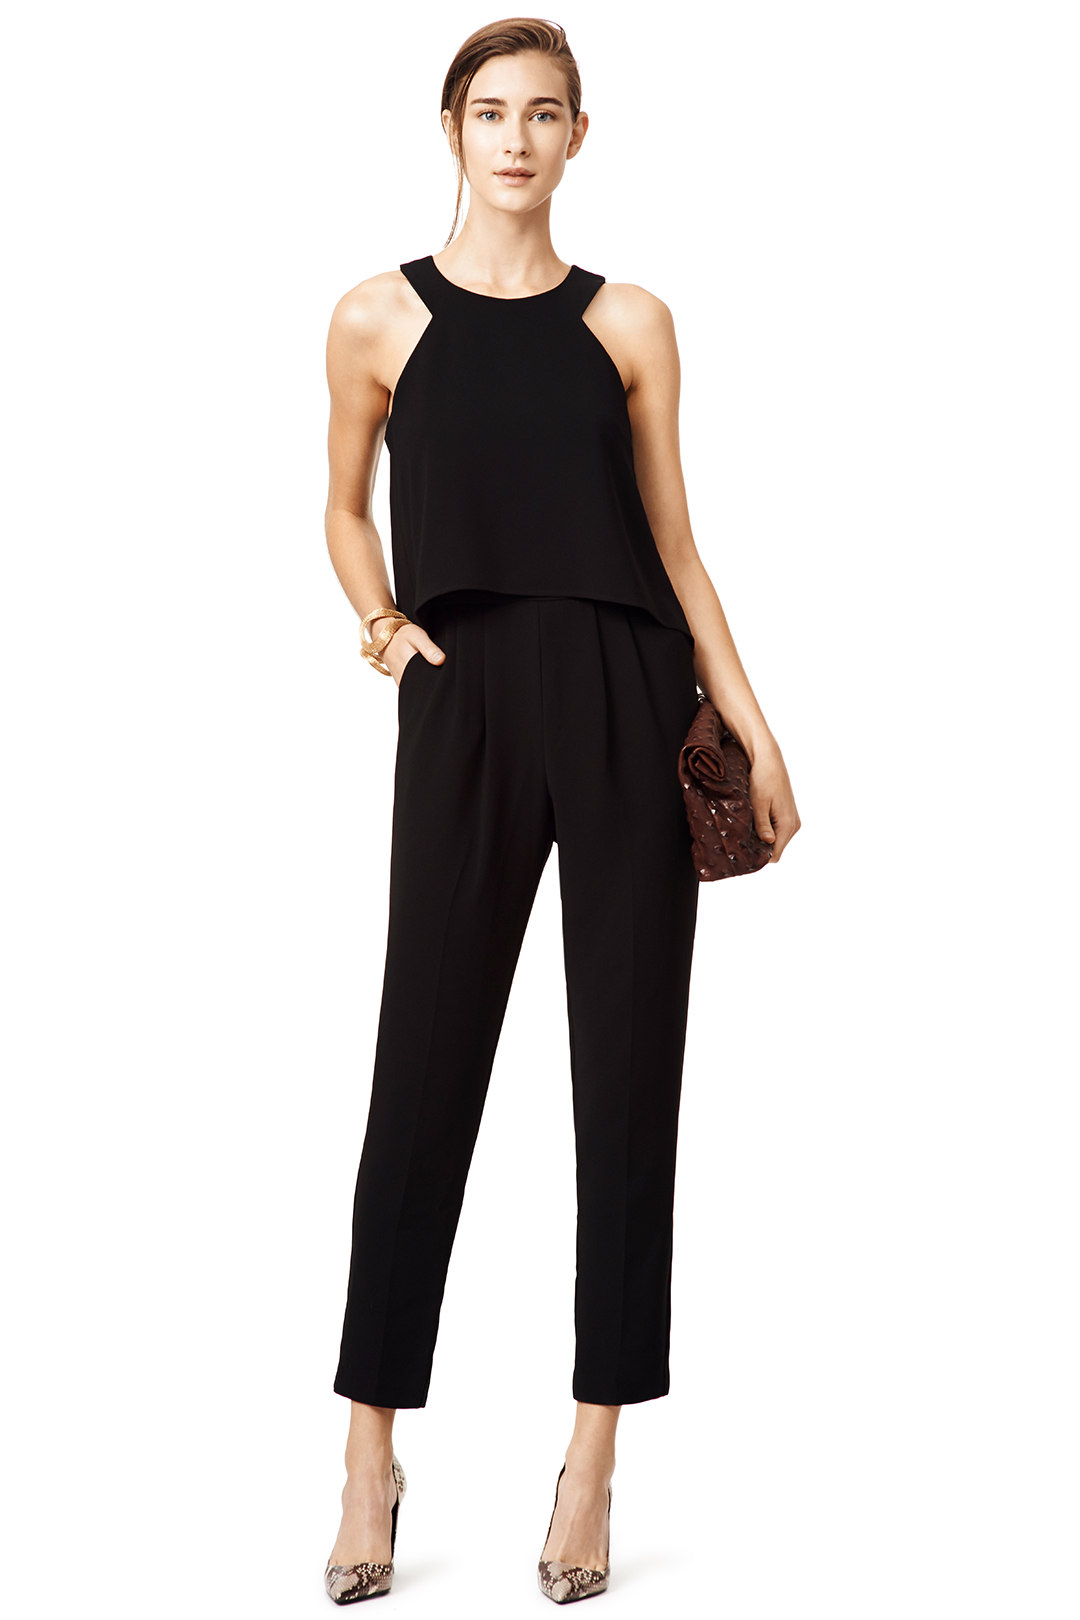 dress_trina_turk_black_anchors_jumpsuit.jpg